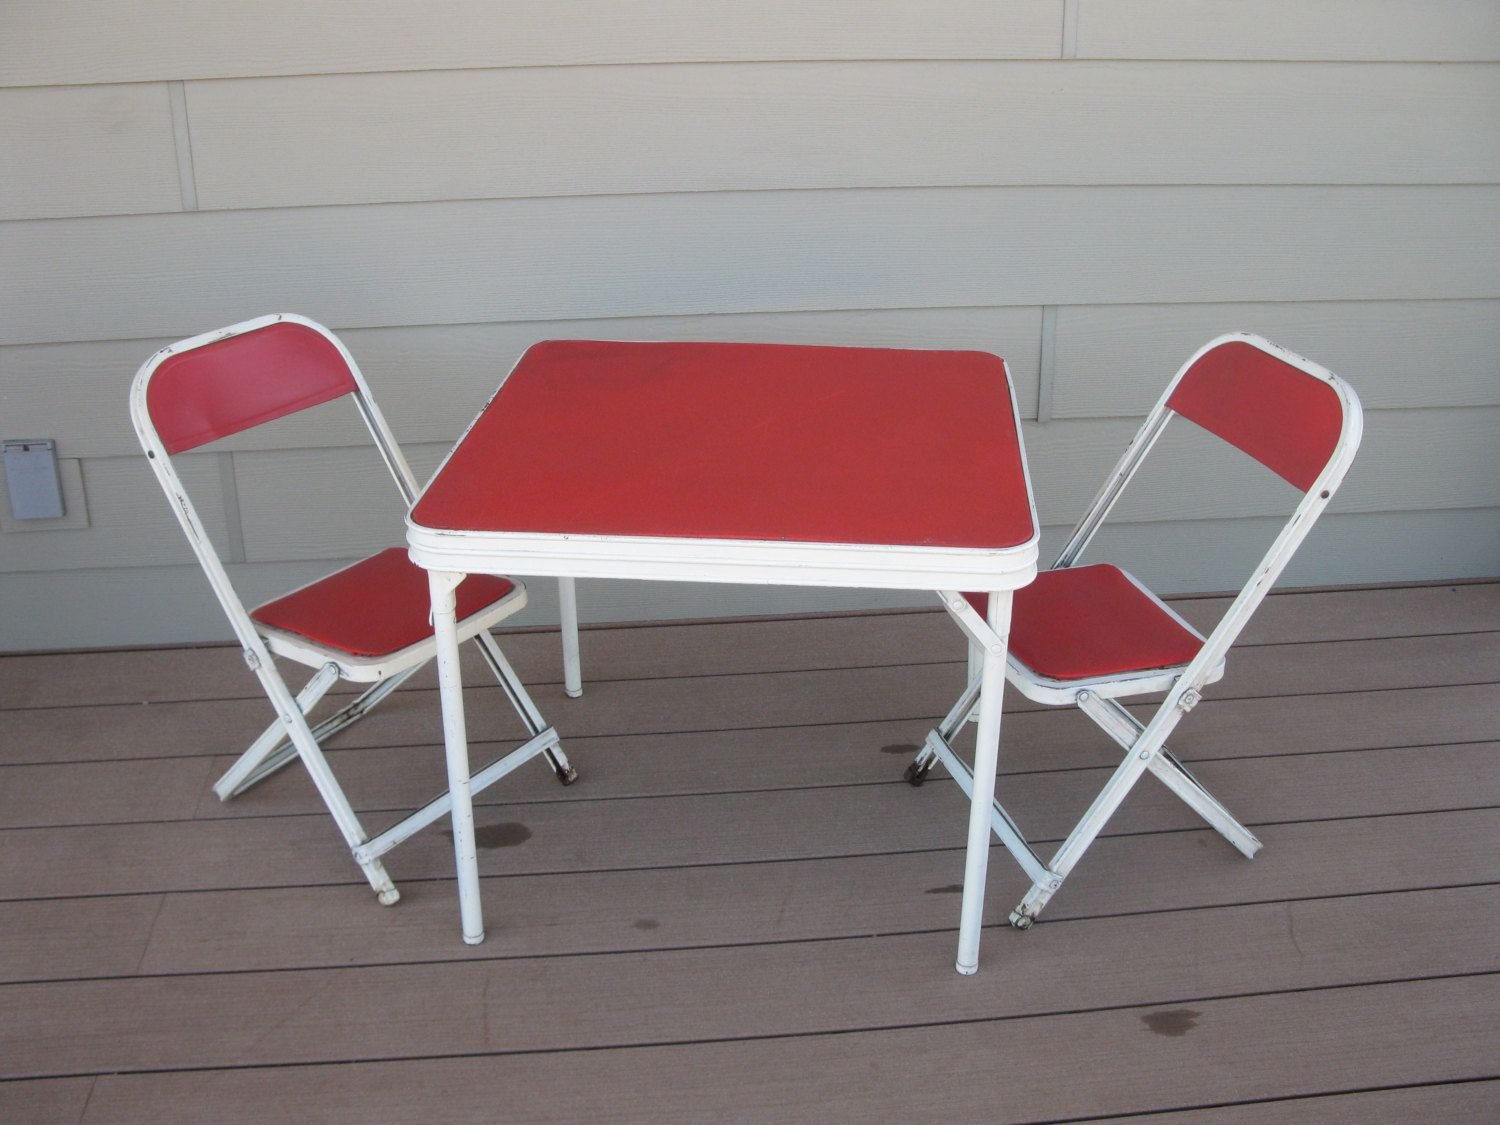 Mid Century Childs Card Table And Chairs Folding Chairs Metal Red Vinyl Retro Home Decor Hampden Specia Card Table And Chairs Retro Home Decor Retro Home